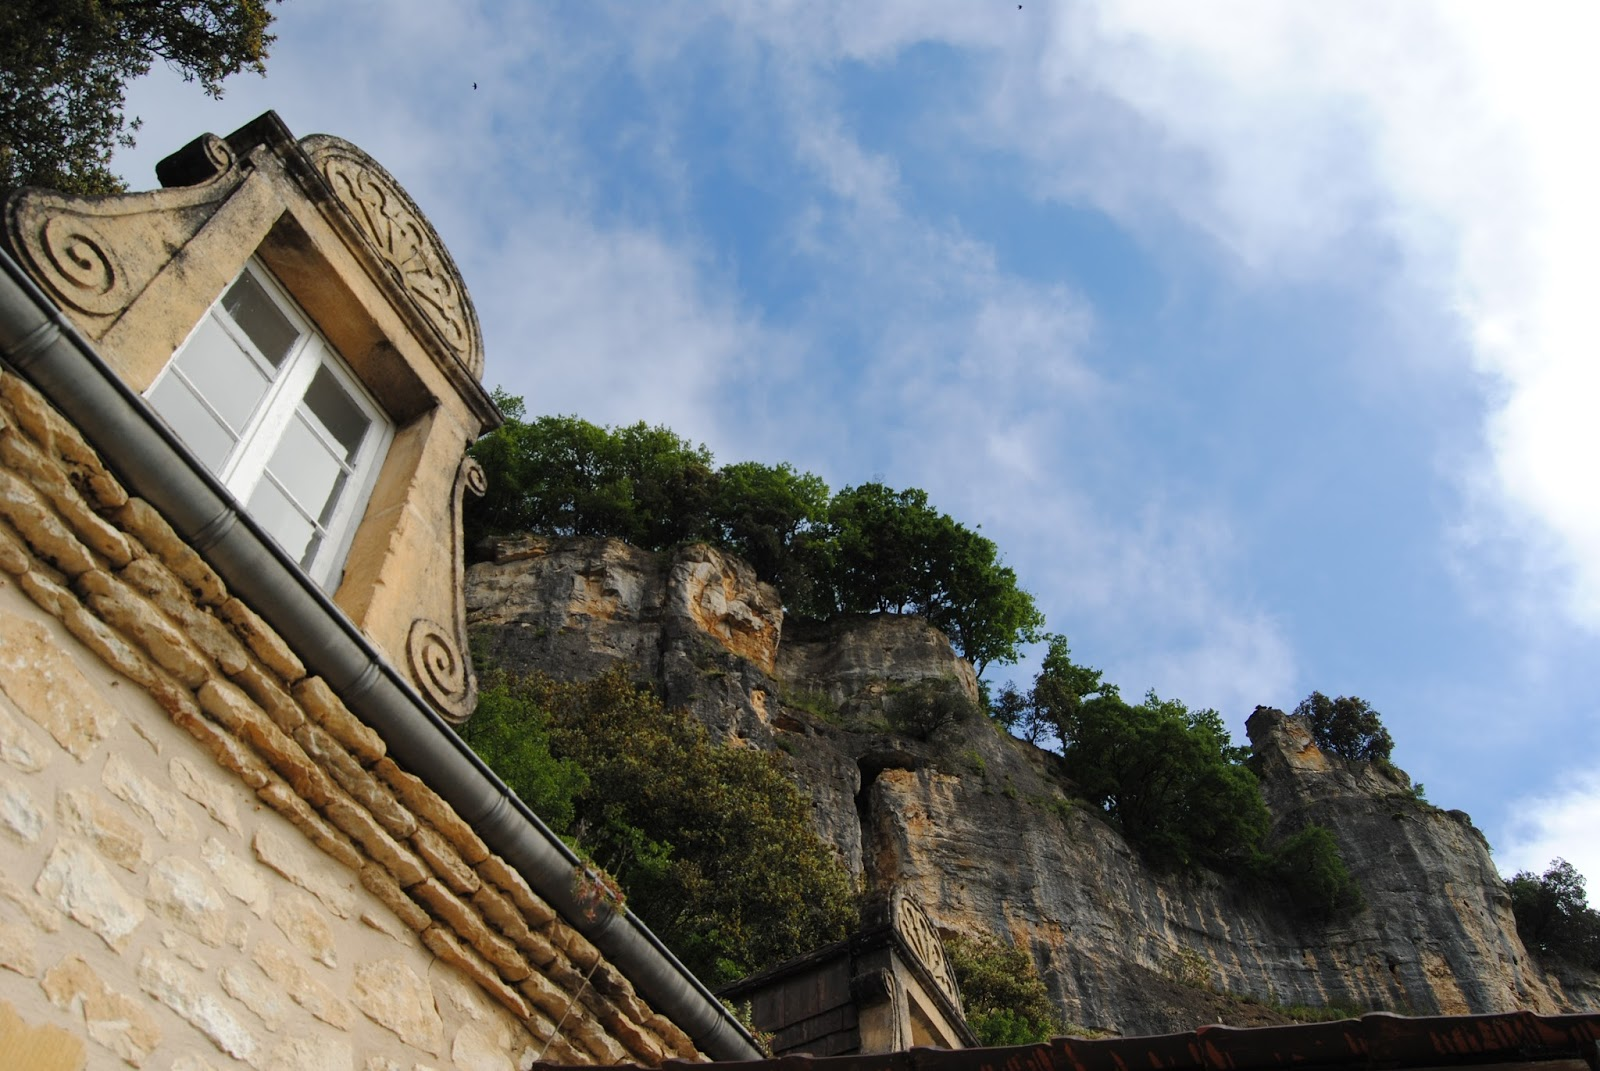 The cliff in La Roque-Gageac